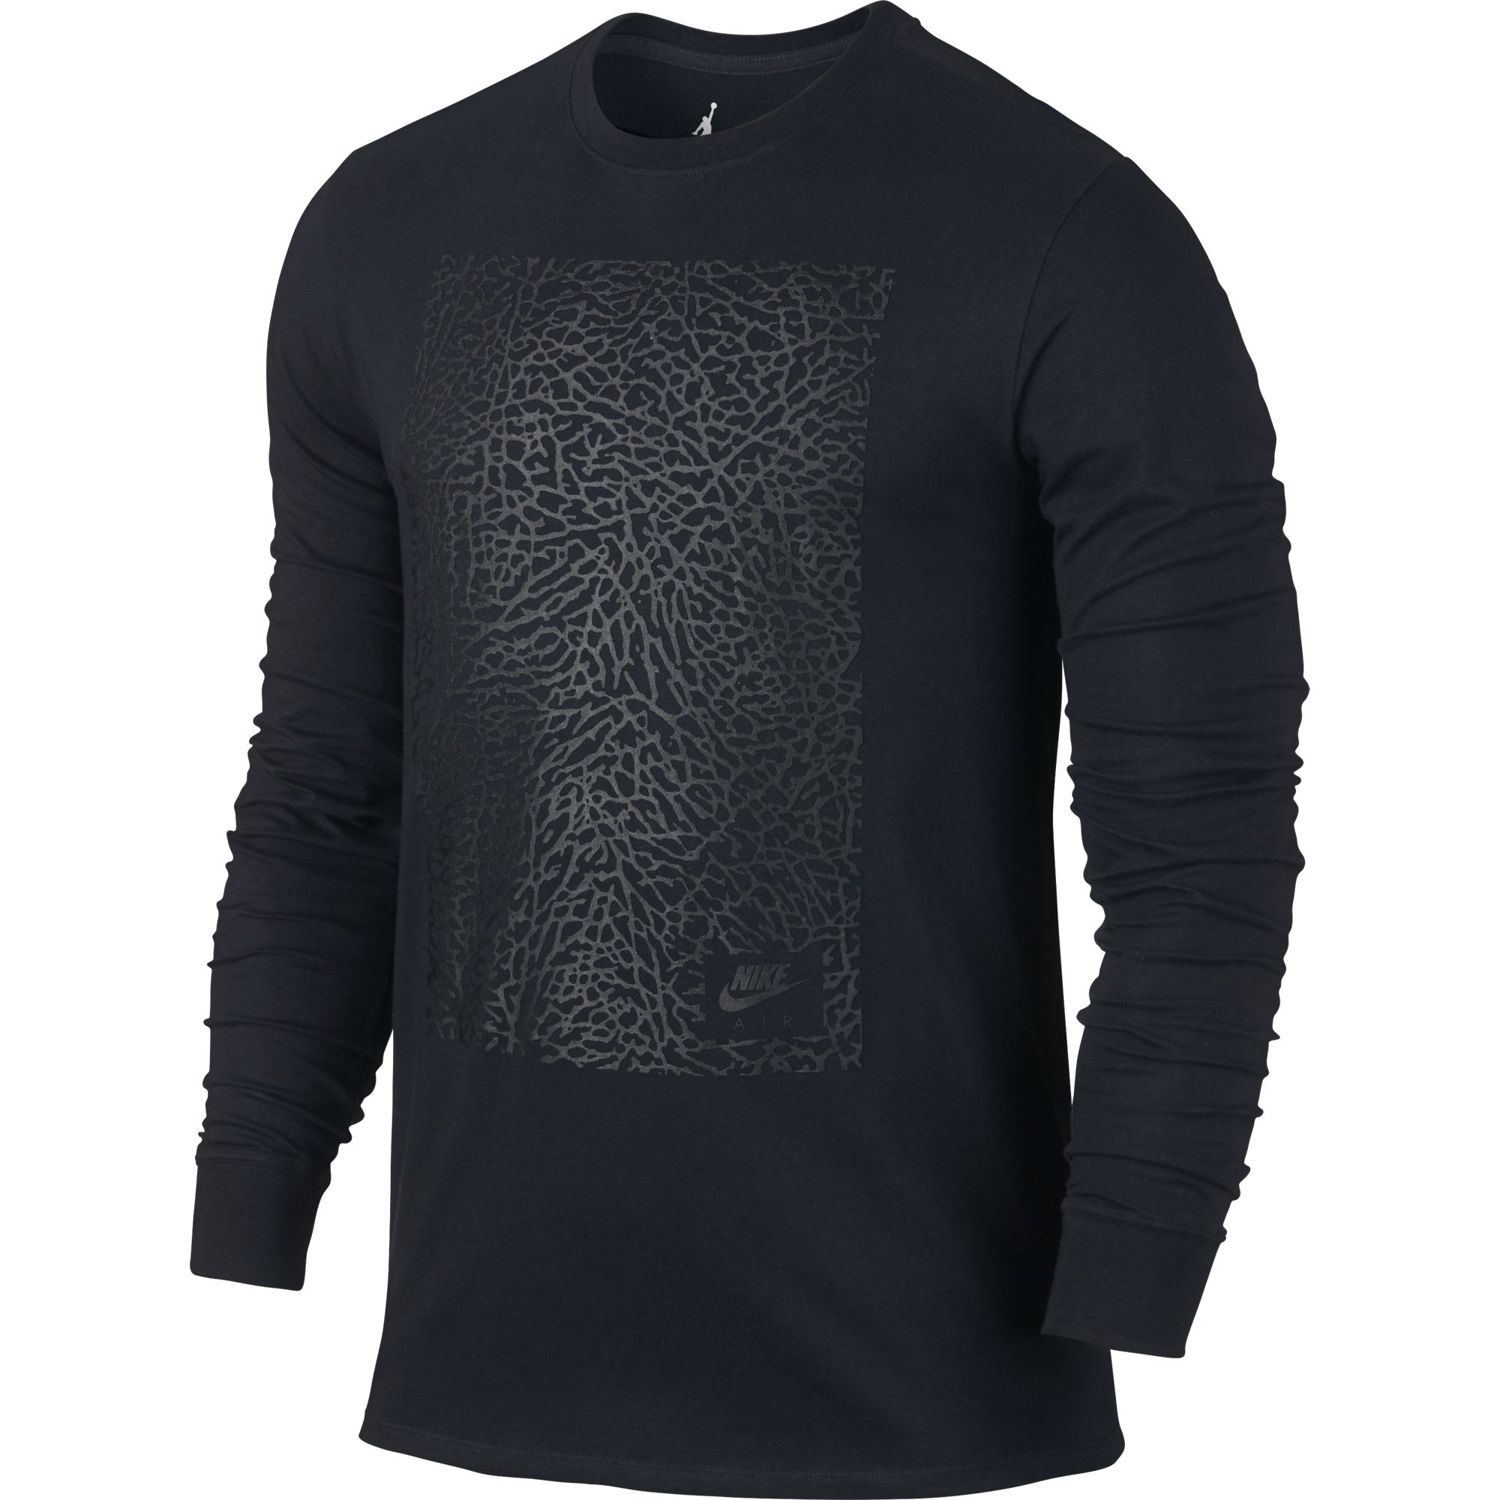 Koszulka Air Jordan 3 Long-Sleeve T-Shirt 823720 010